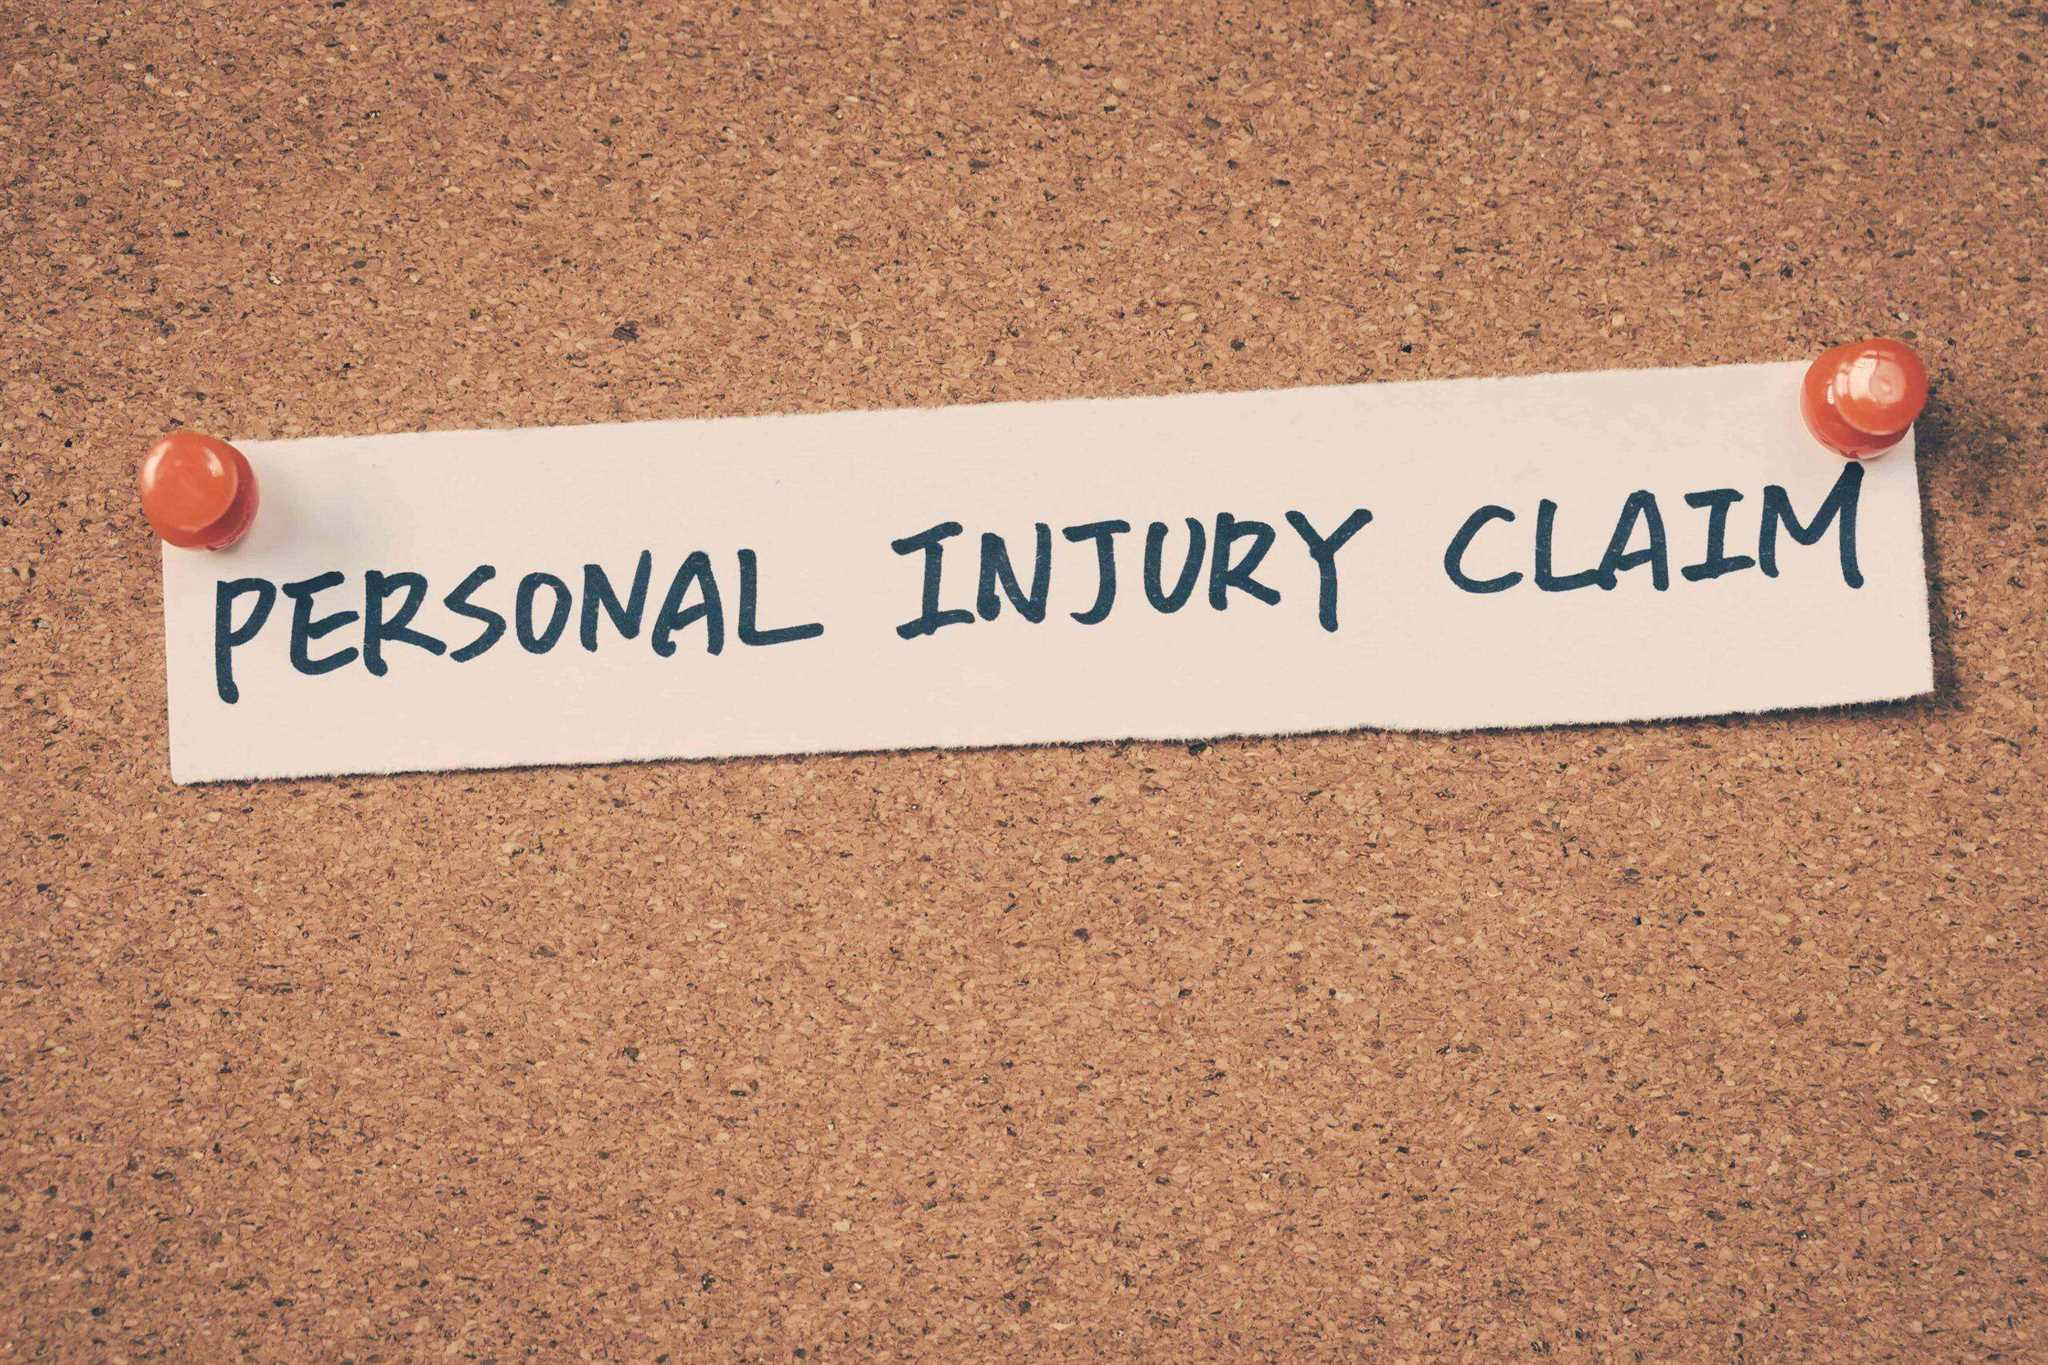 Who Pays for Your Medical Bills During the Personal Injury Claim Process?